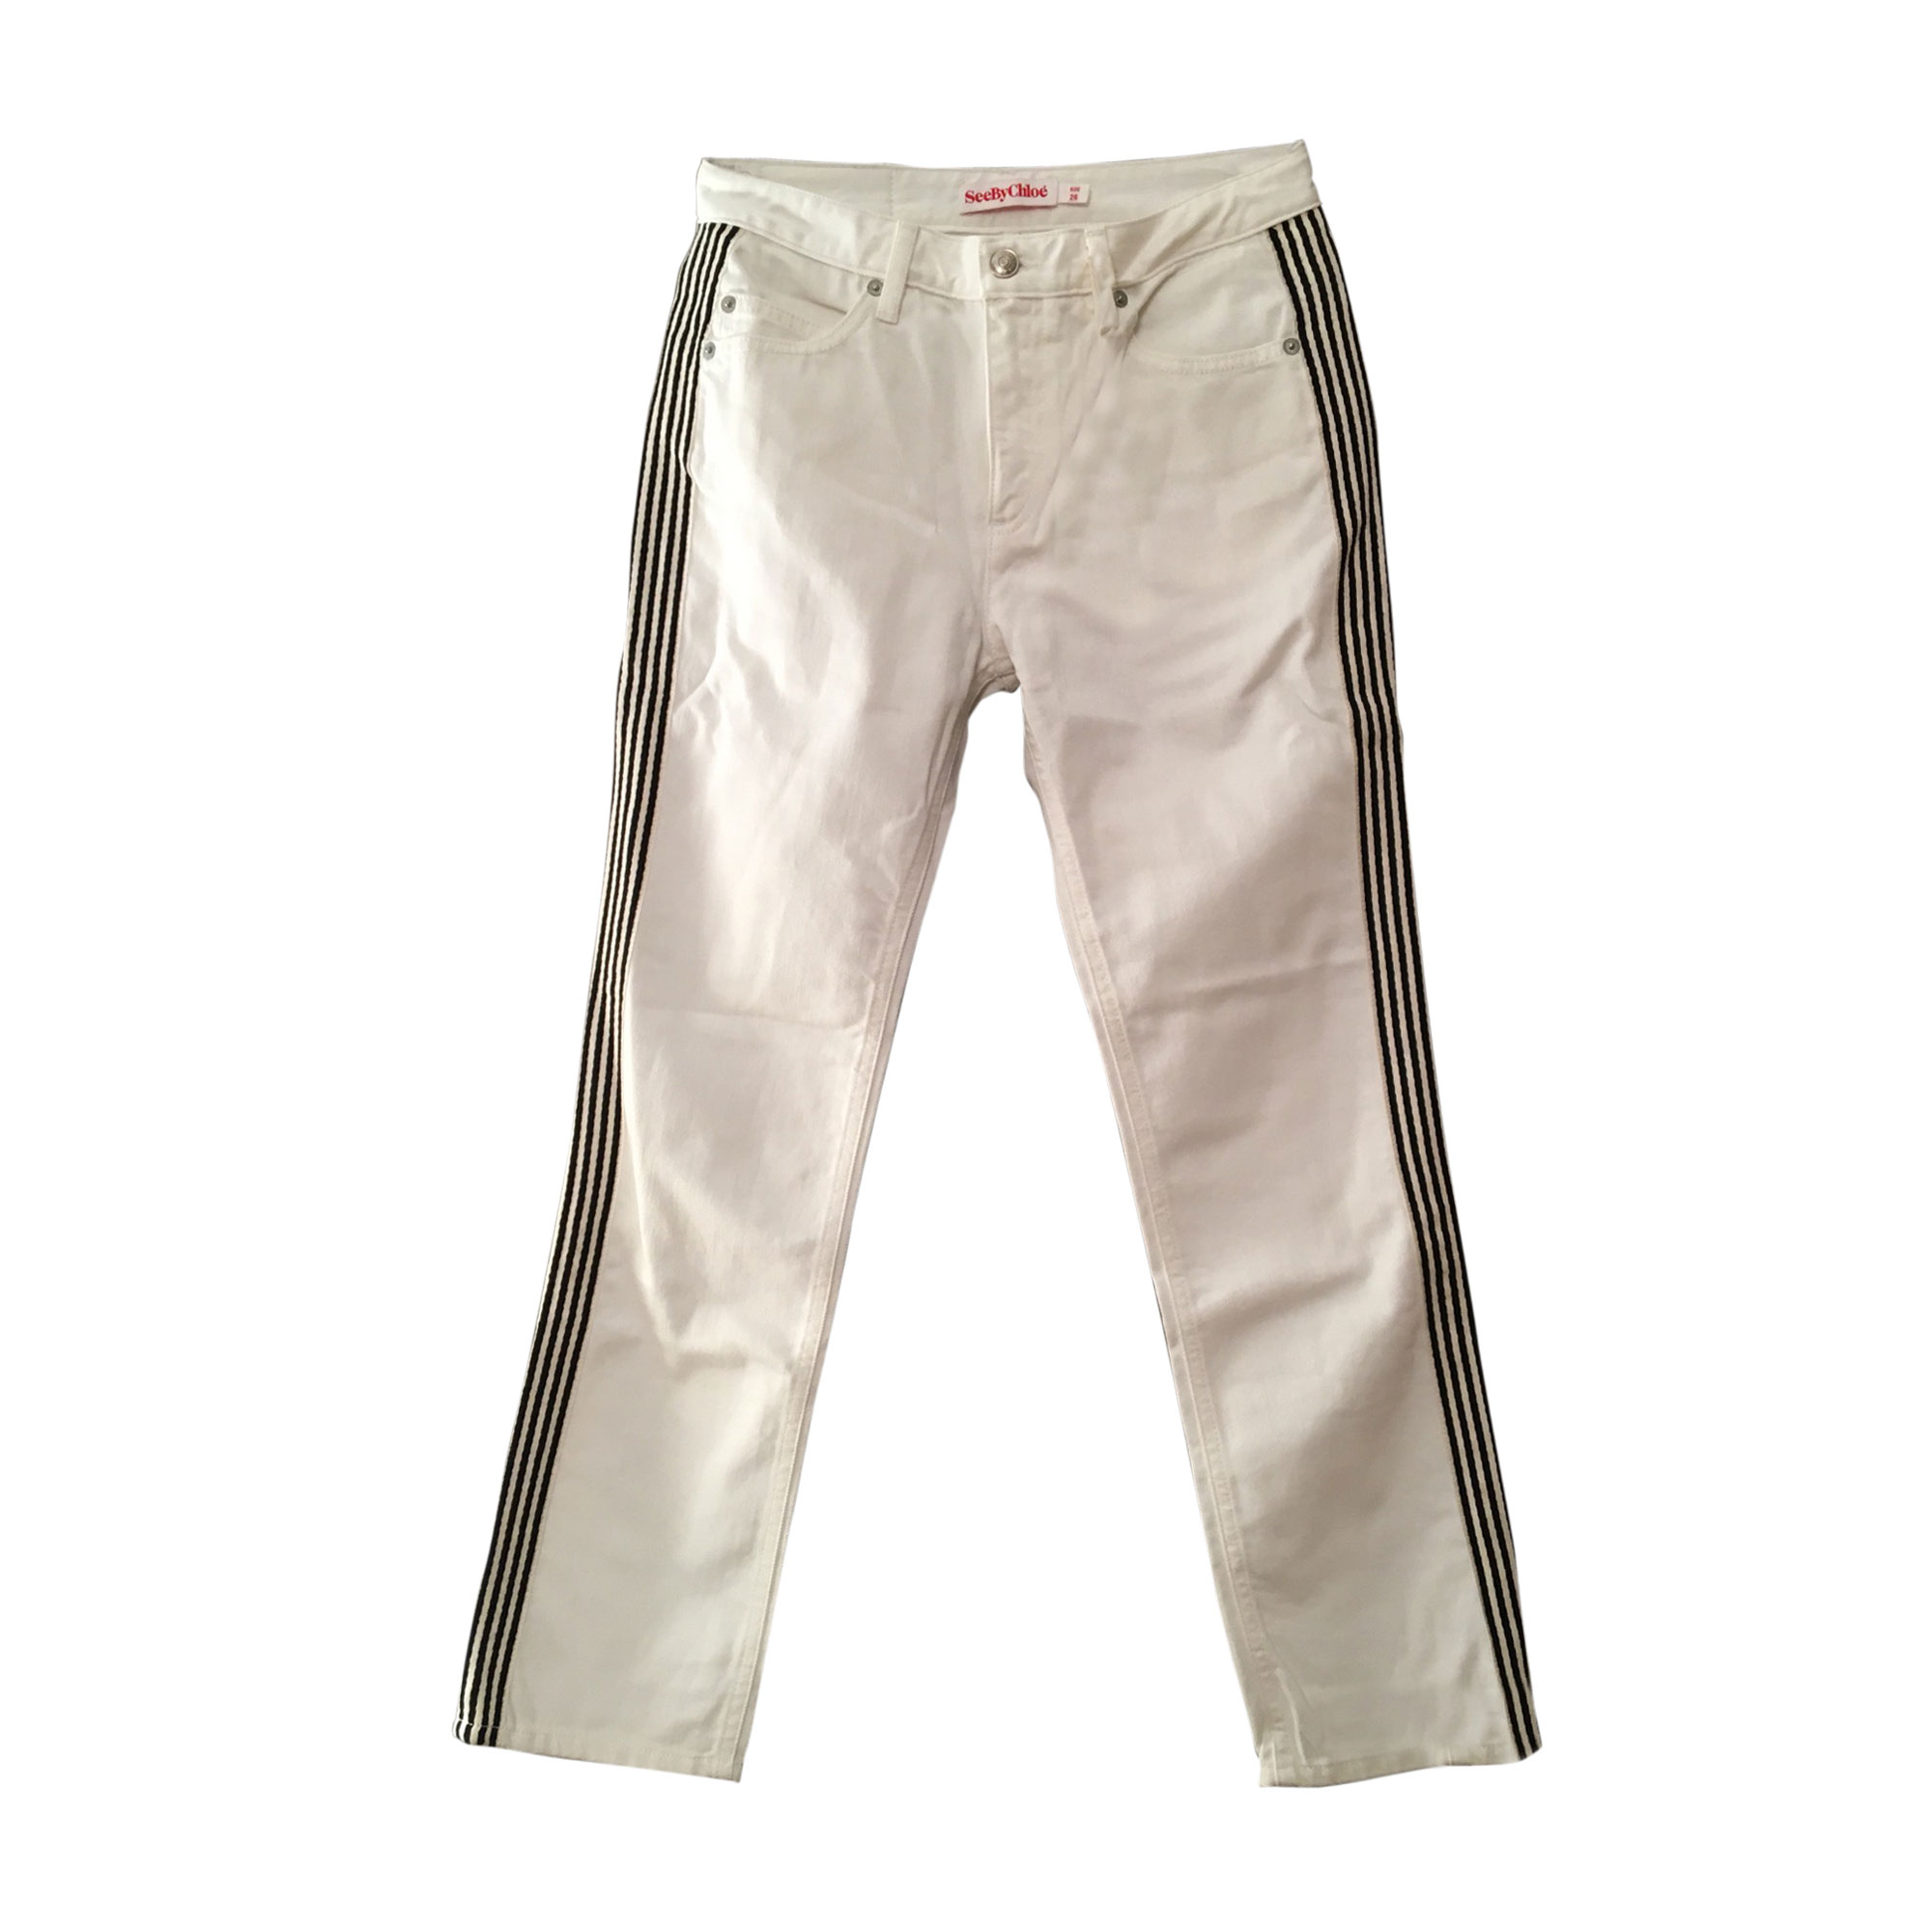 Jeans dritto SEE BY CHLOE Bianco, bianco sporco, ecru